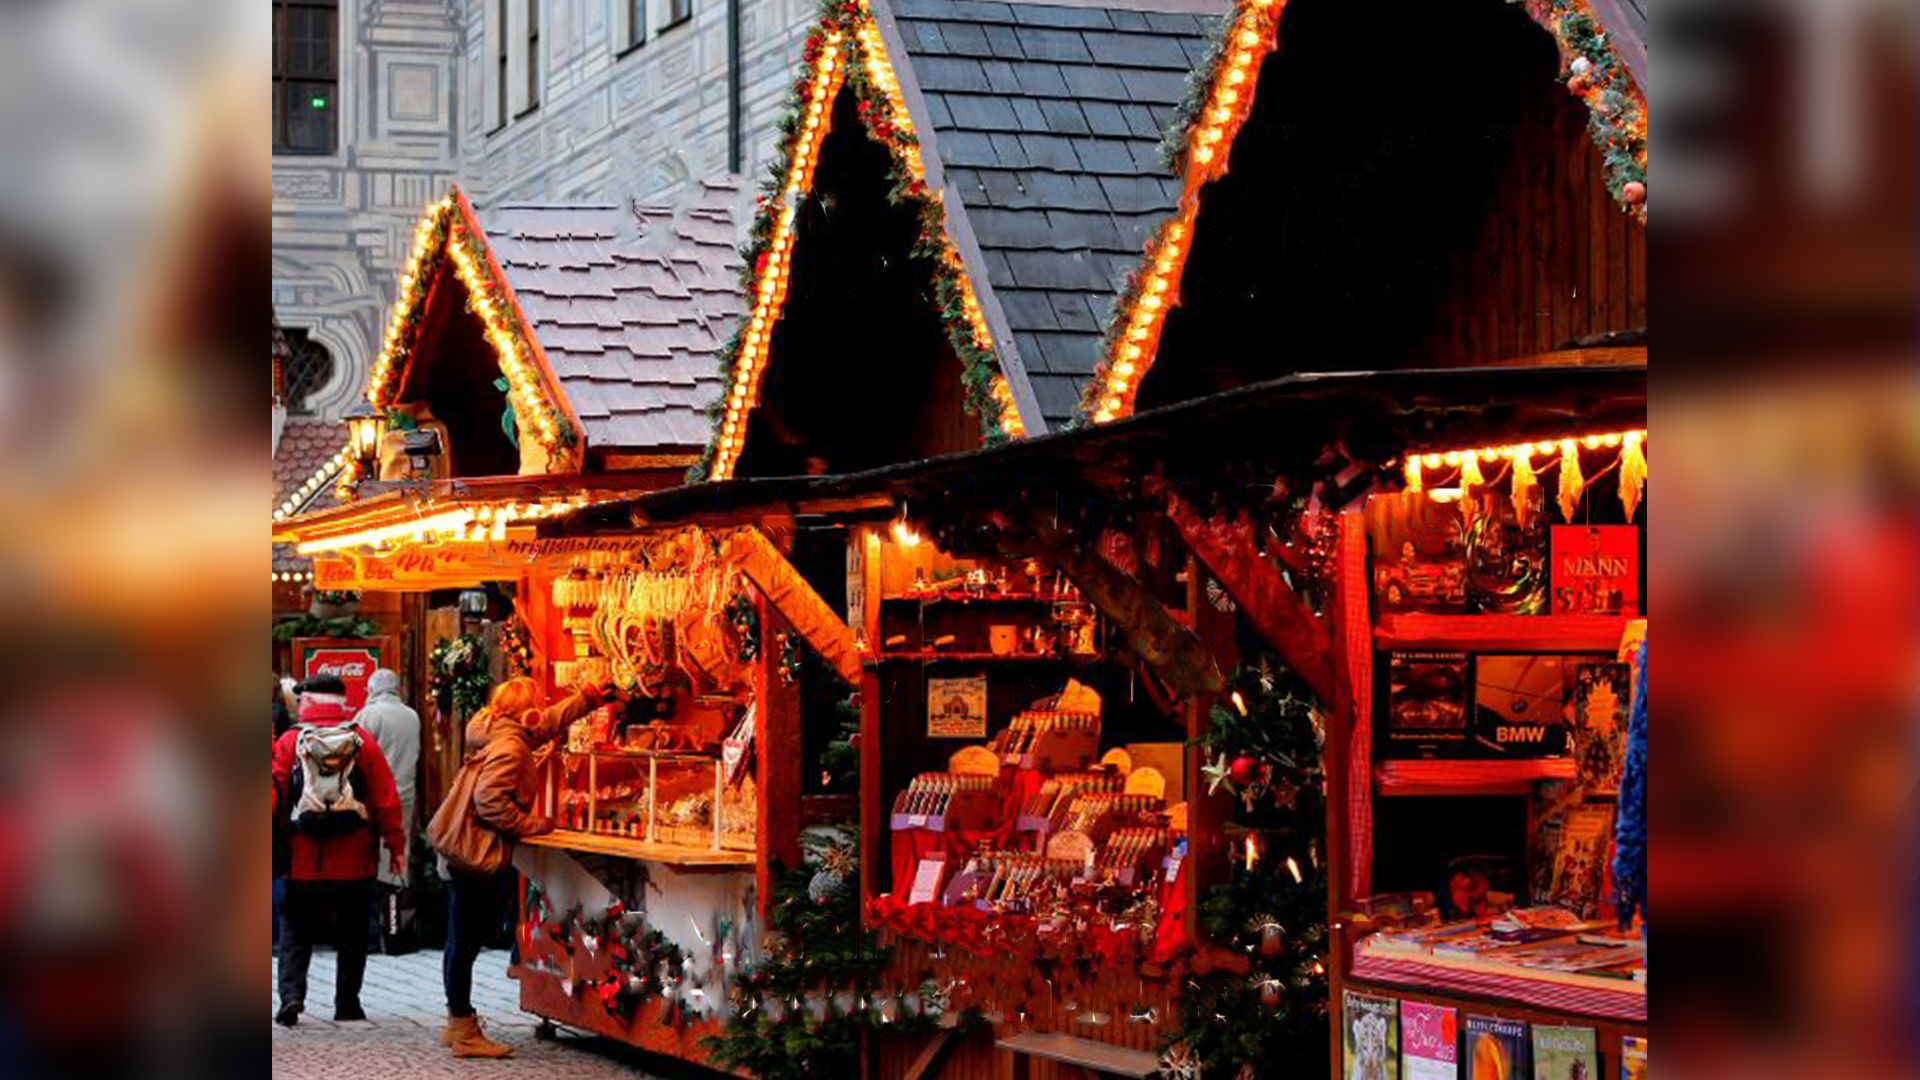 Restaurants Open On Christmas Day 2020 In Rockford Illinois Outdoor Christmas market coming to Rockford this weekend